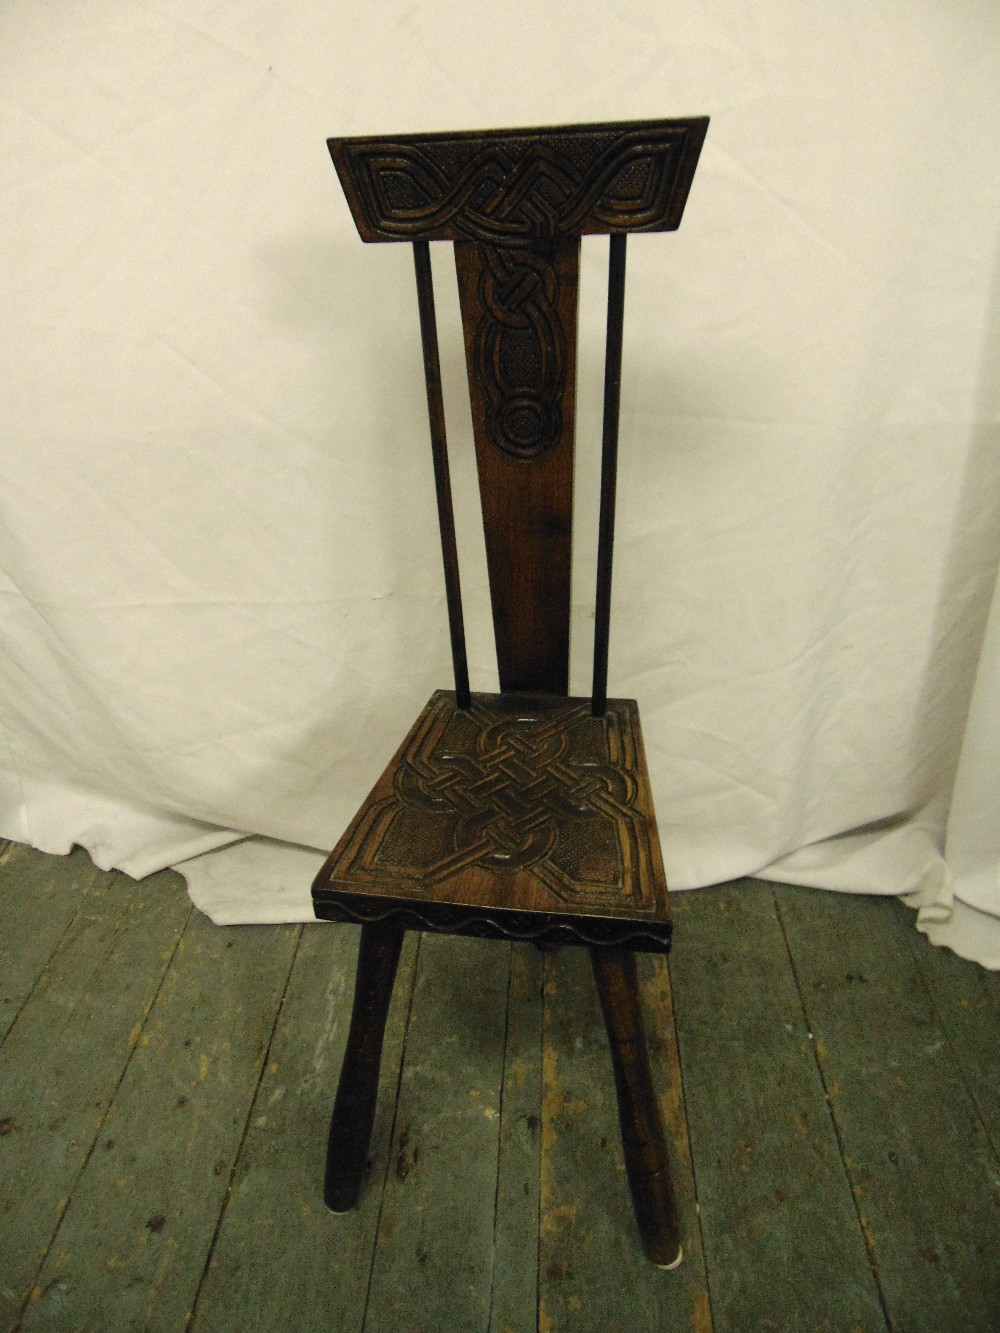 Lot 29 - A Victorian oak milking chair with T-form geometric back, carved seat and cylindrical legs